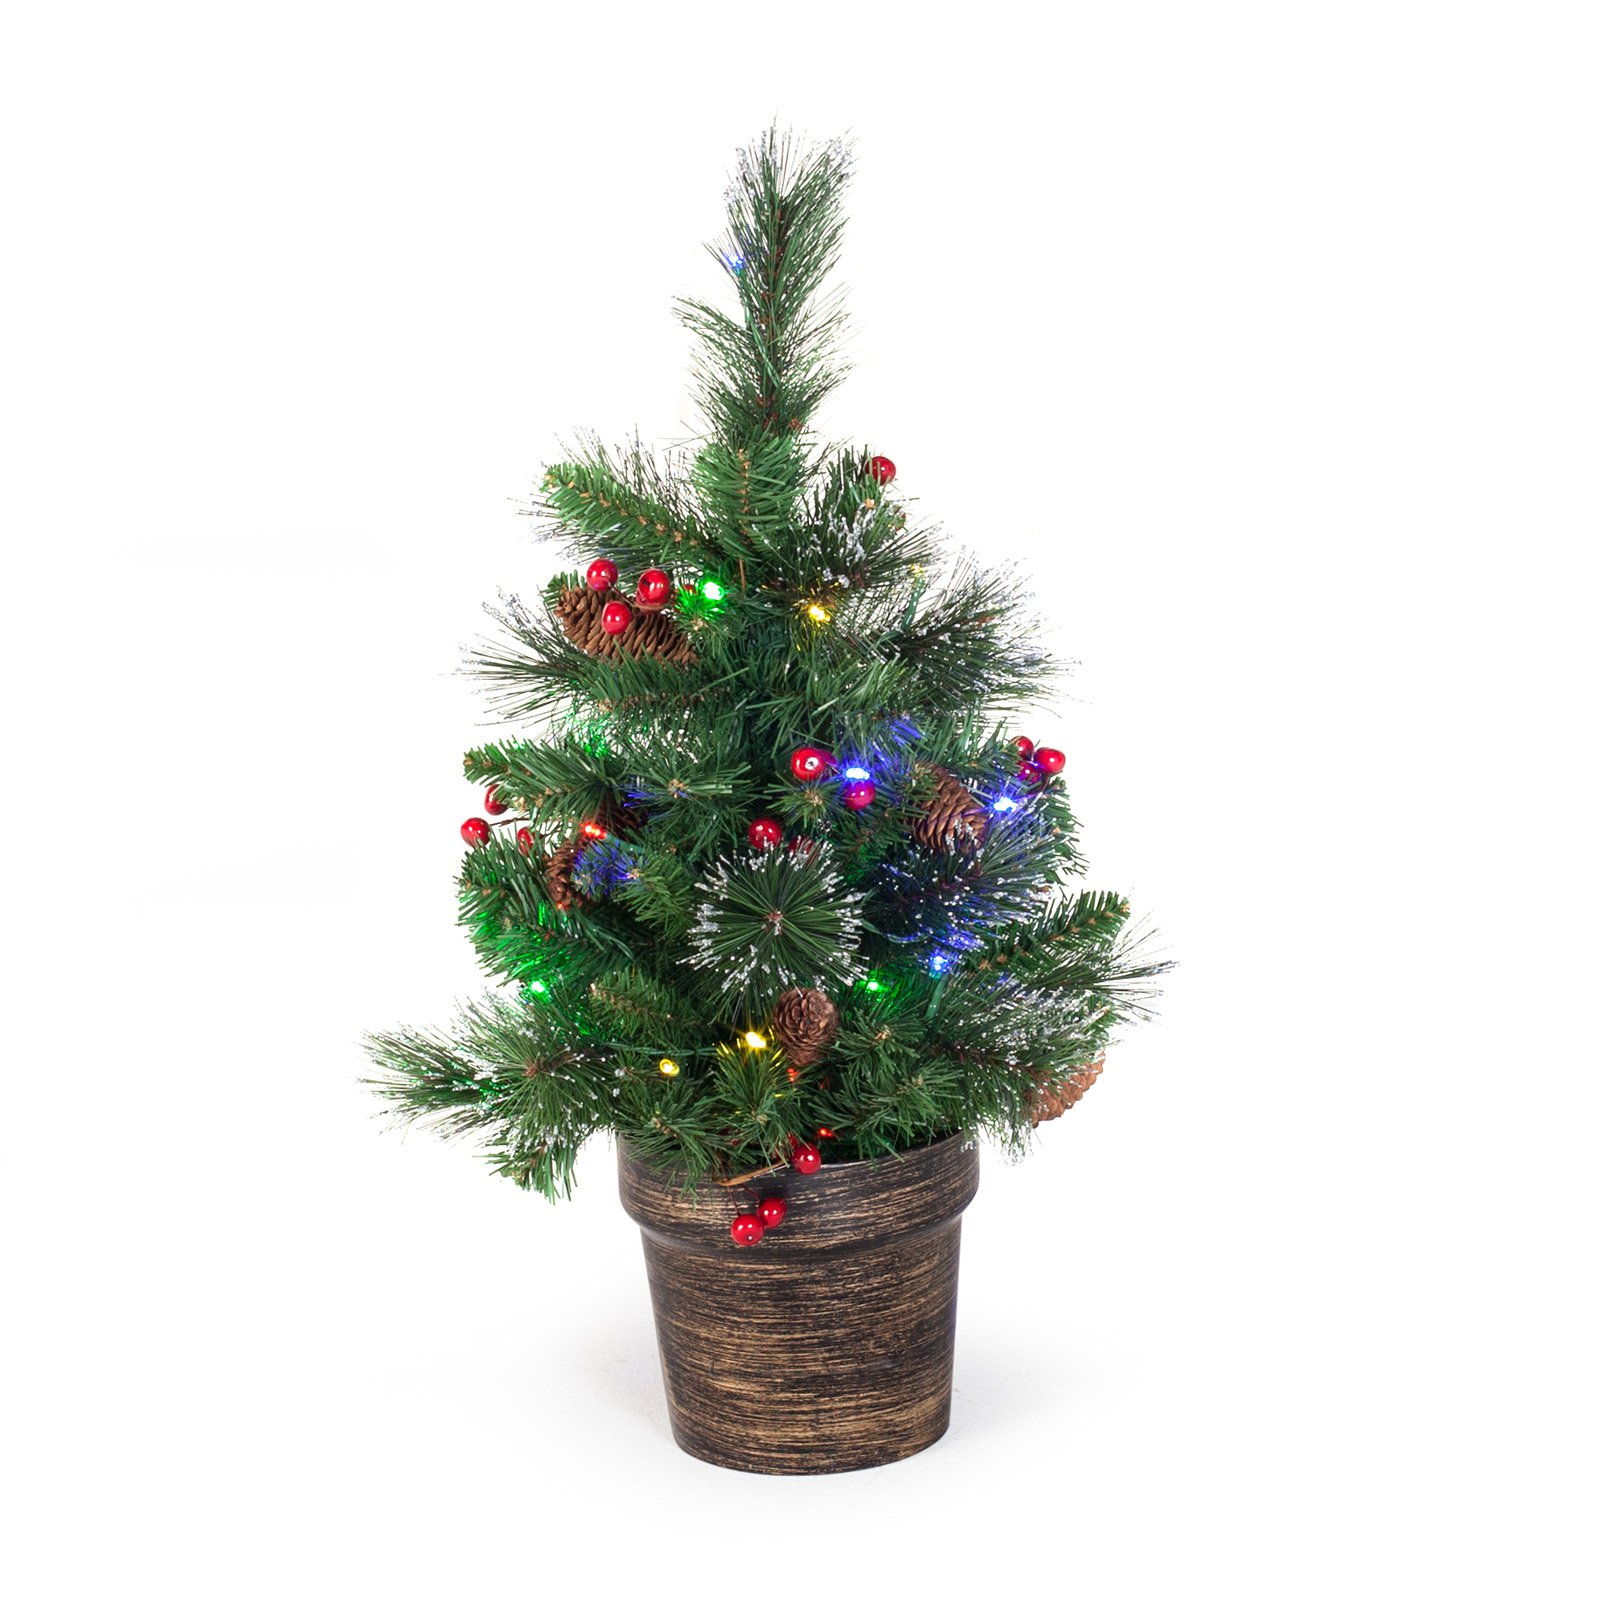 National Tree Pre-Lit 2' Crestwood Spruce Small Artificial Christmas Tree with Silver Bristle, Cones, Red Berries and Glitter in a Plastic Bronze Pot with 35 Battery Operated Multi LED Lights